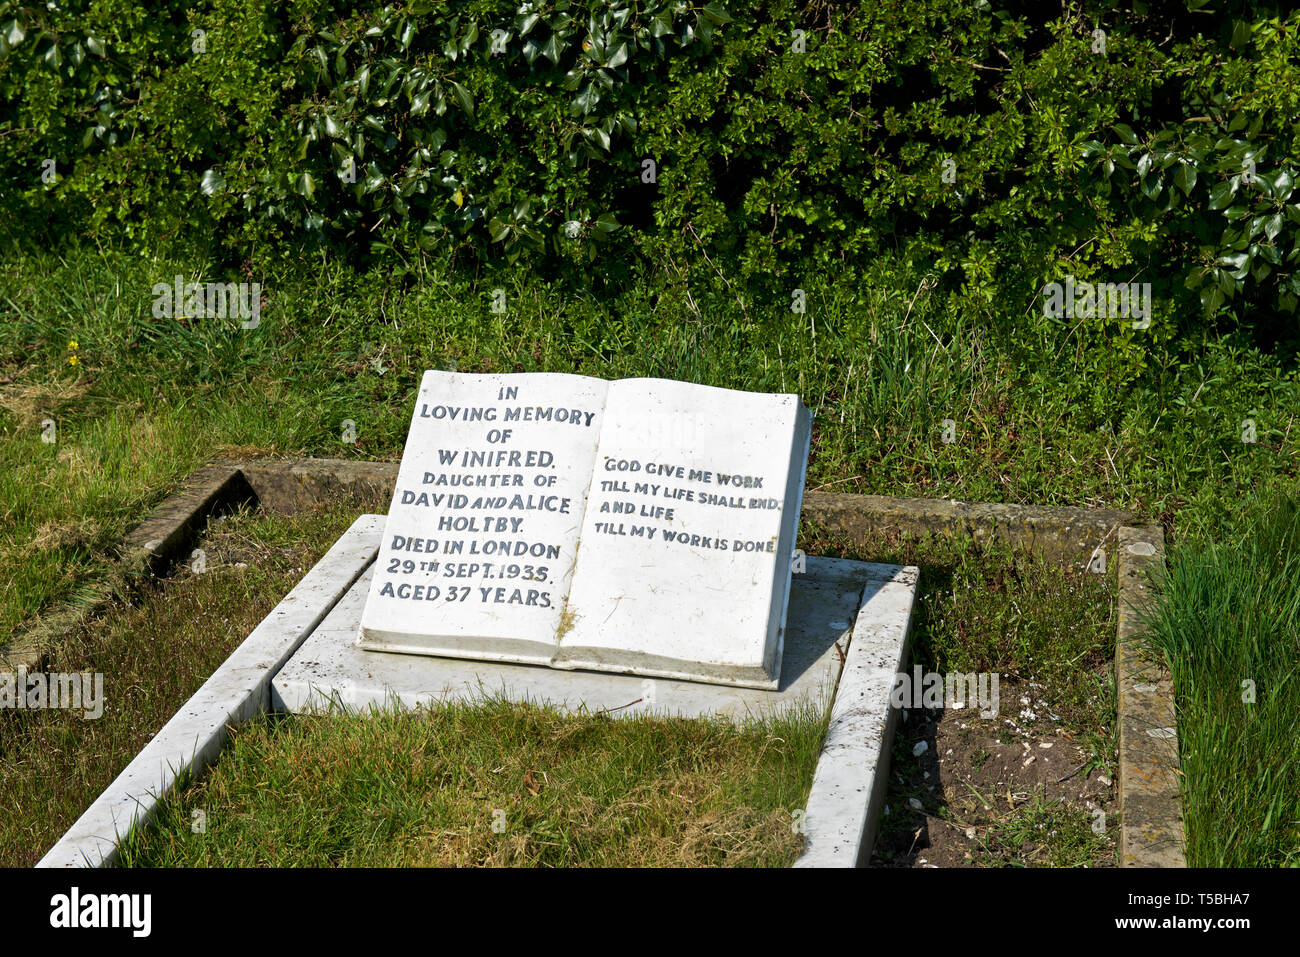 The Grave Of Winifred Holtby Author Of South Riding In The Graveyard Of All Saints Church Rudston East Yorkshire England Uk Stock Photo Alamy